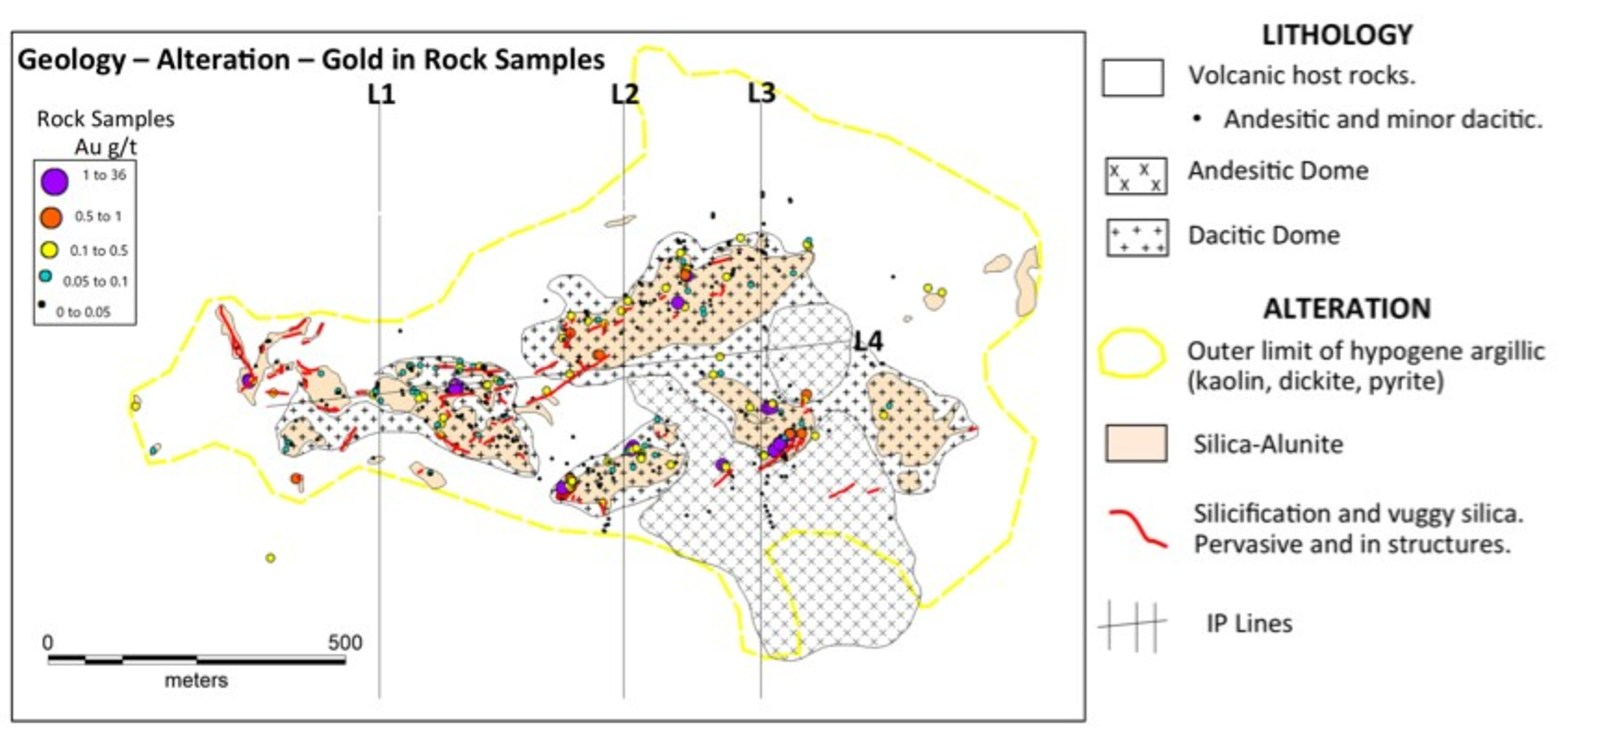 Figure 2 Location of IP lines with sampling distribution and geology